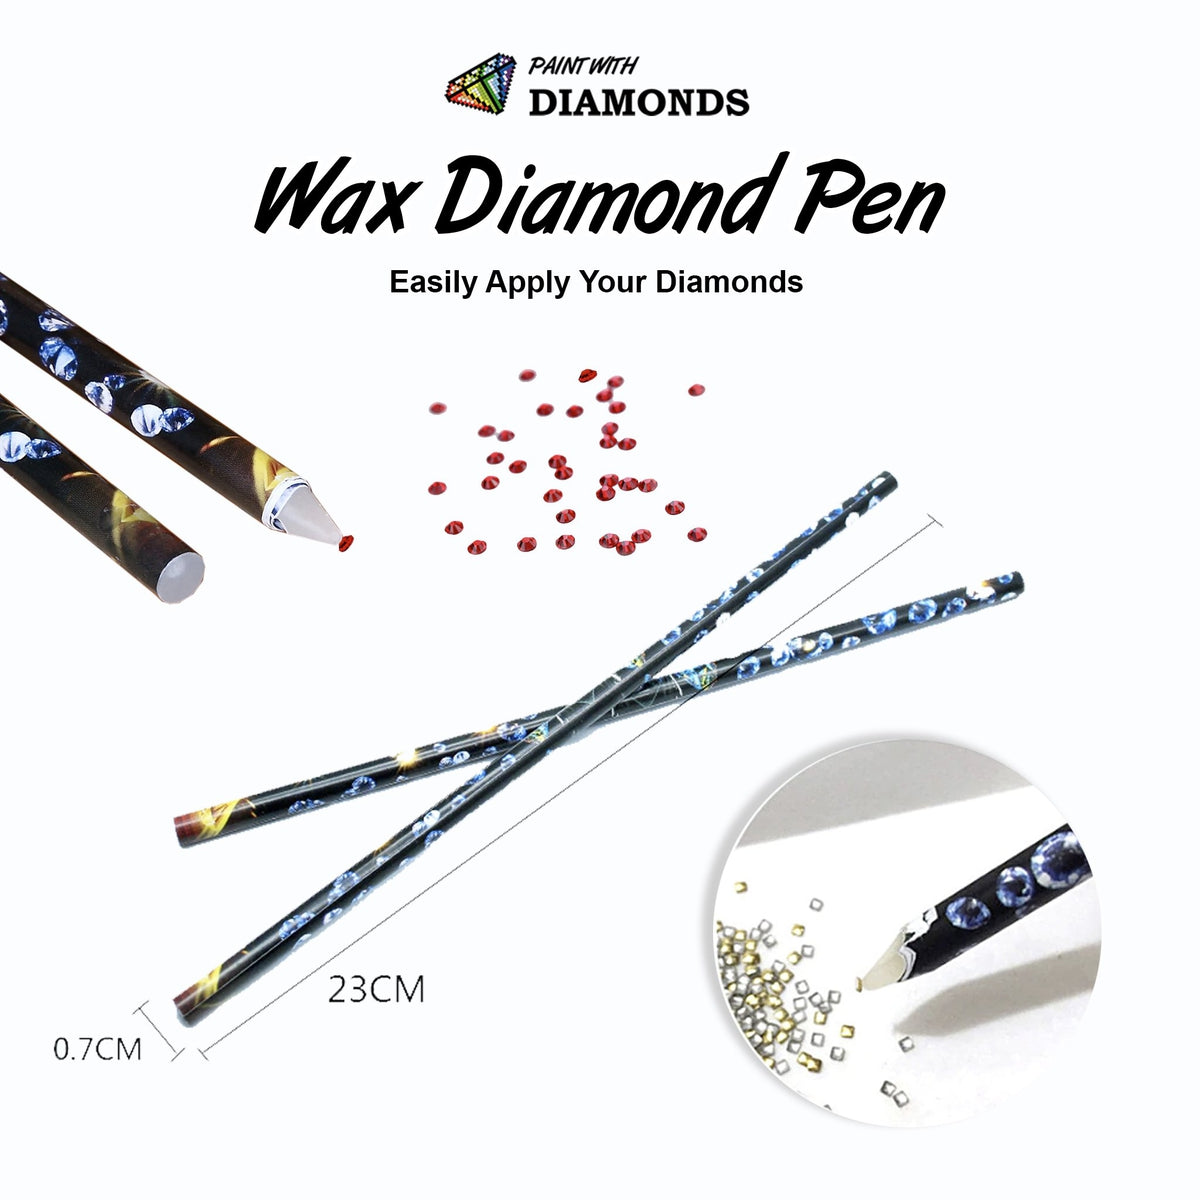 Wax Diamond Pen